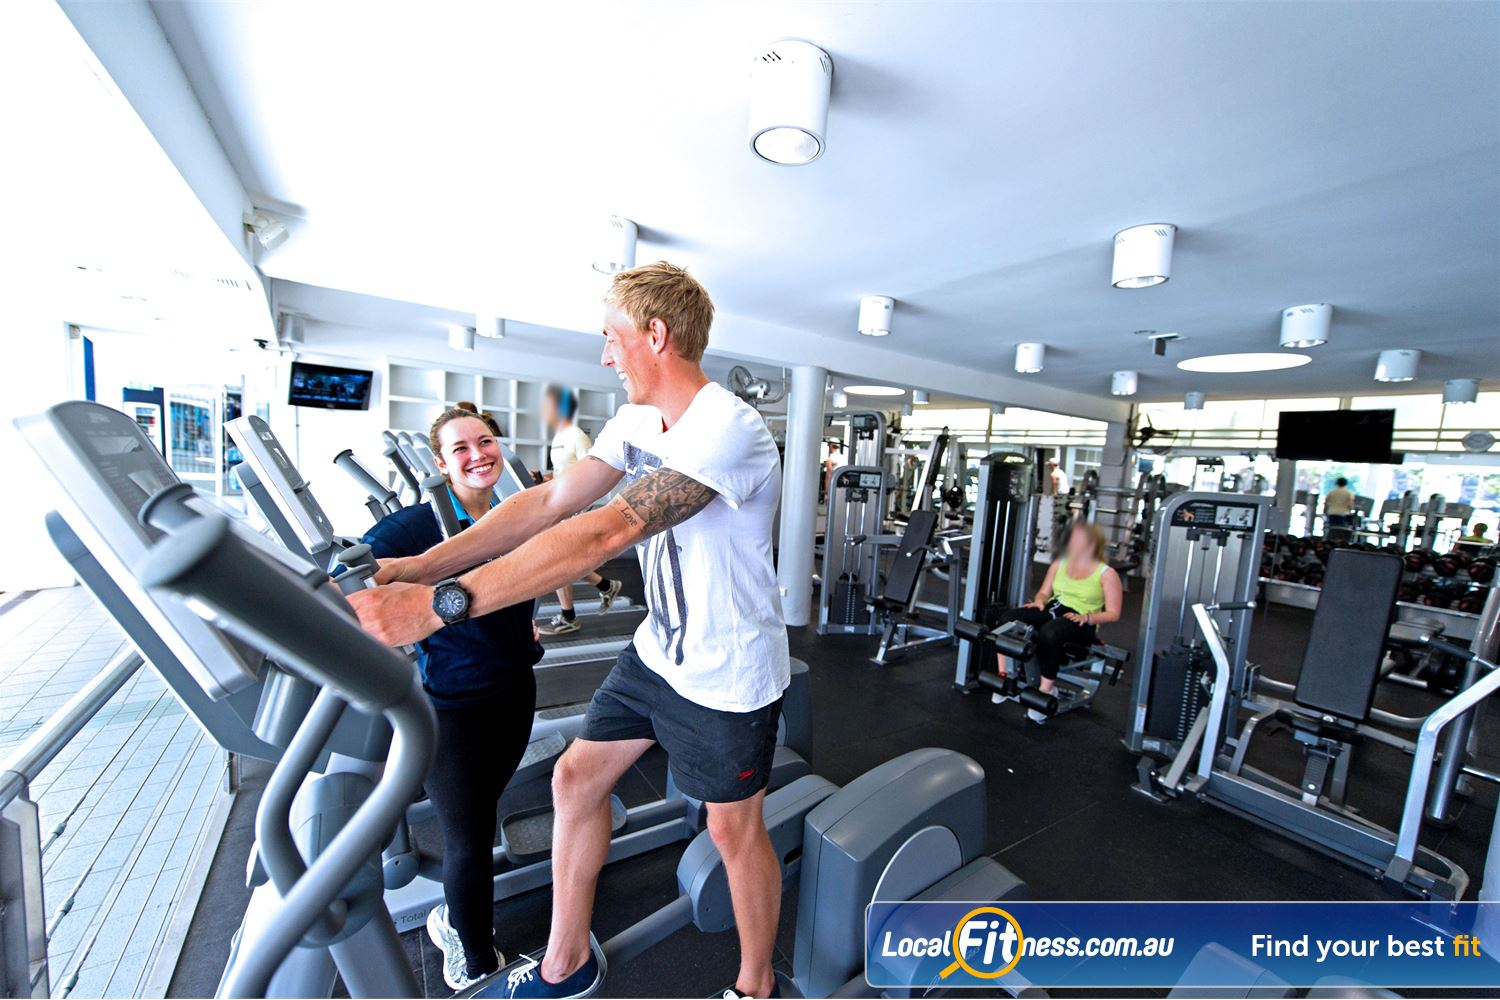 Victoria Park Pool Camperdown Ask our gym instructors about incorporating cardio training into your workout.